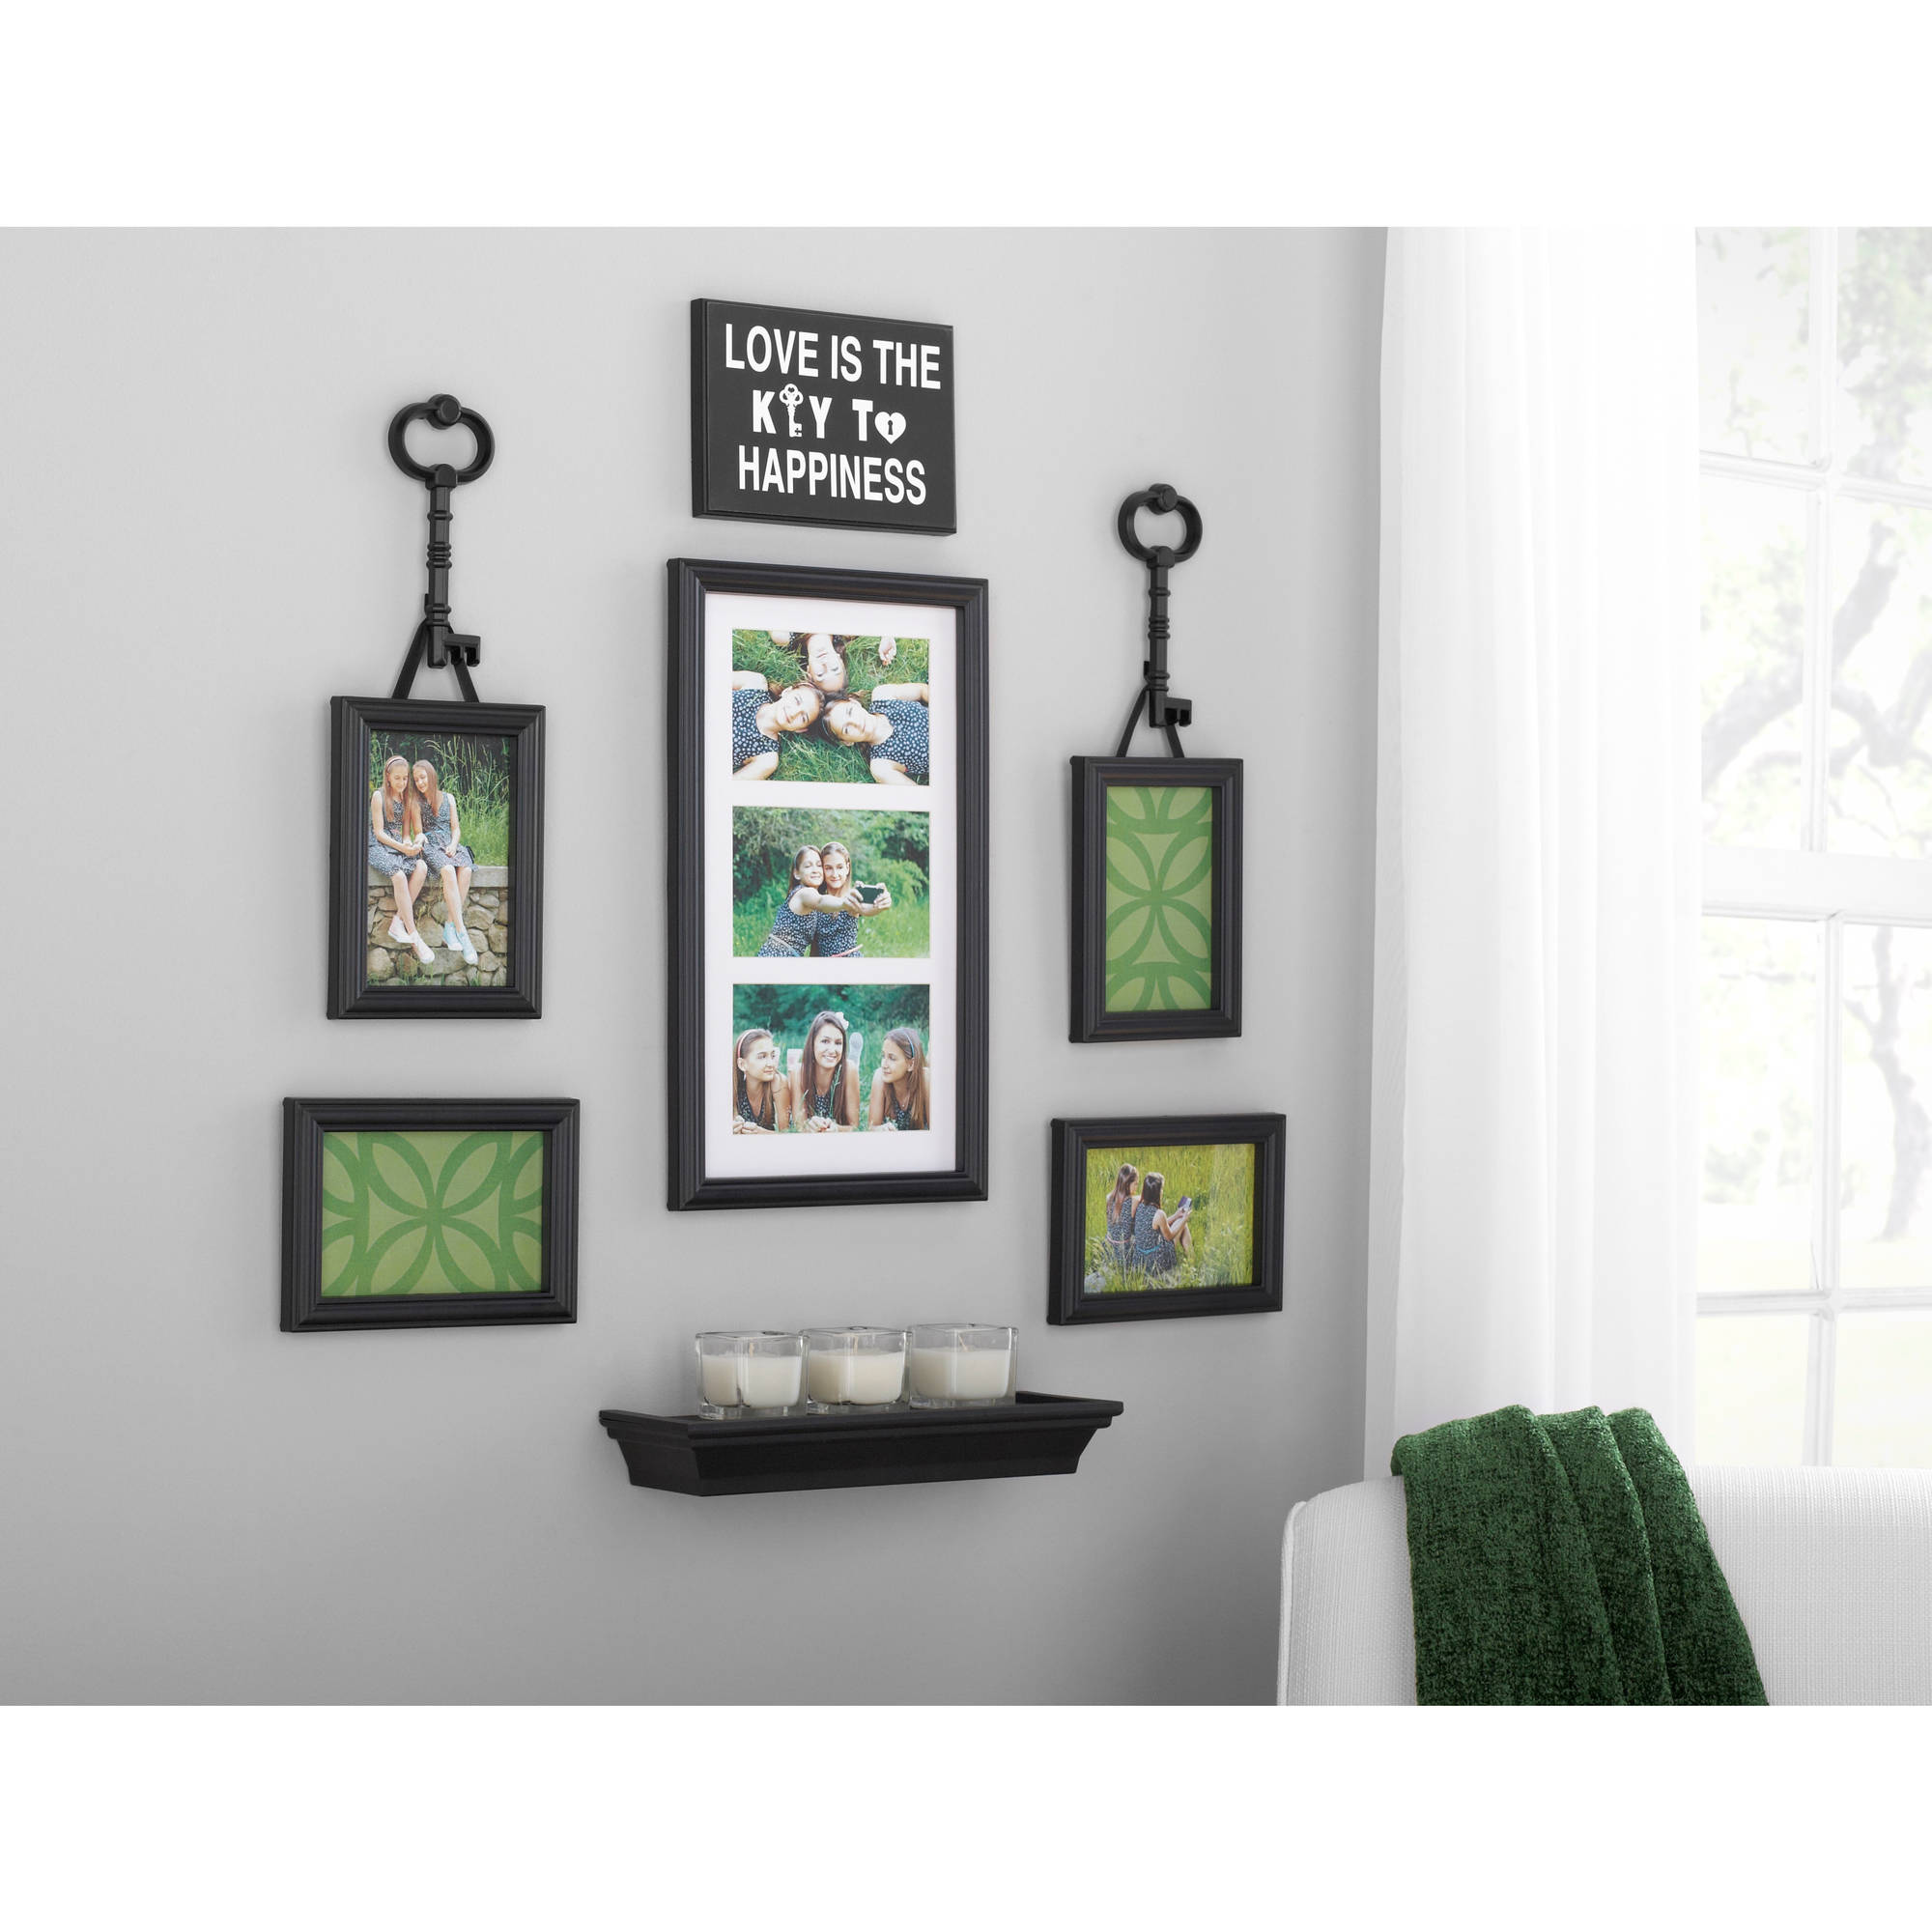 Mainstays 9 Piece Key Expression Wall Frame Set Home Decor Gallery Photo